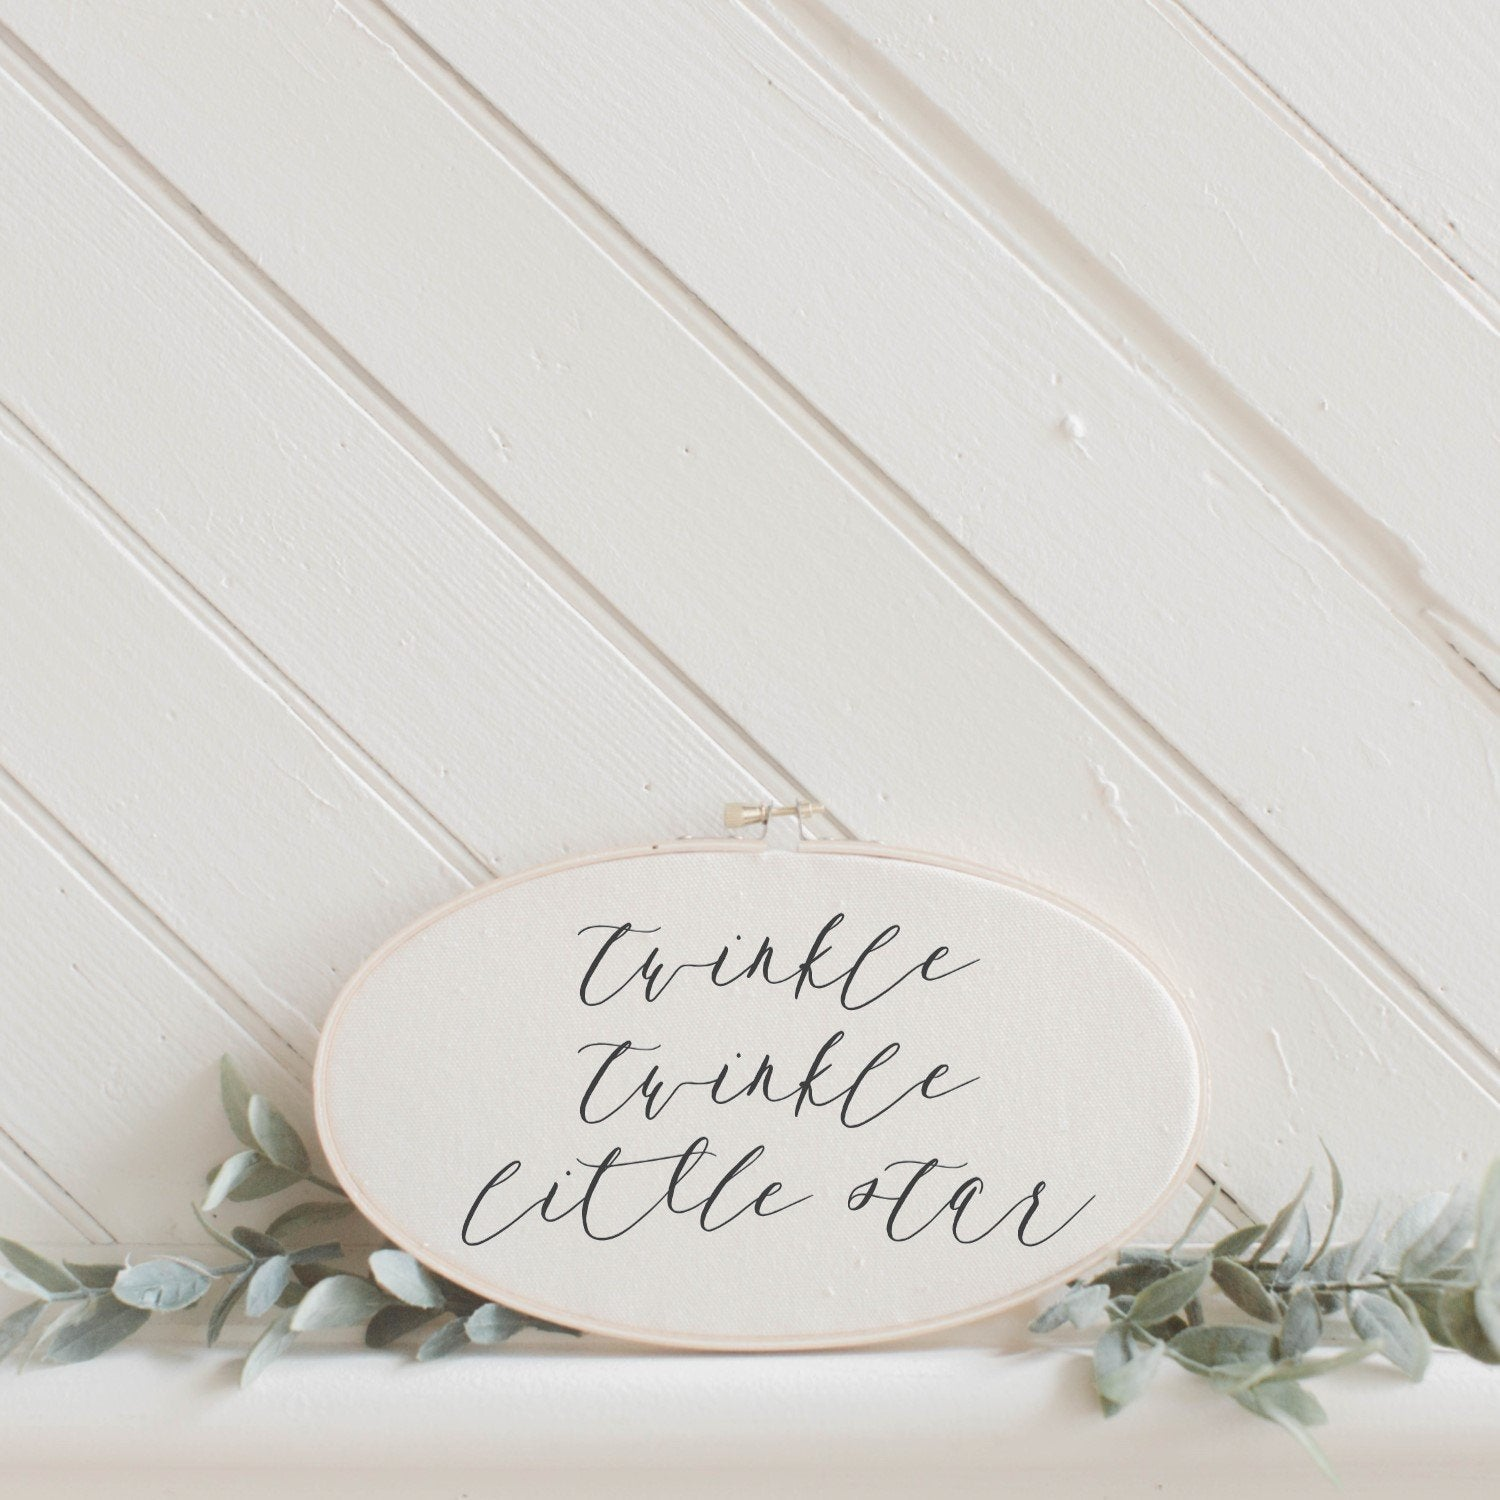 Twinkle Twinkle Little Star Faux Embroidery Hoop